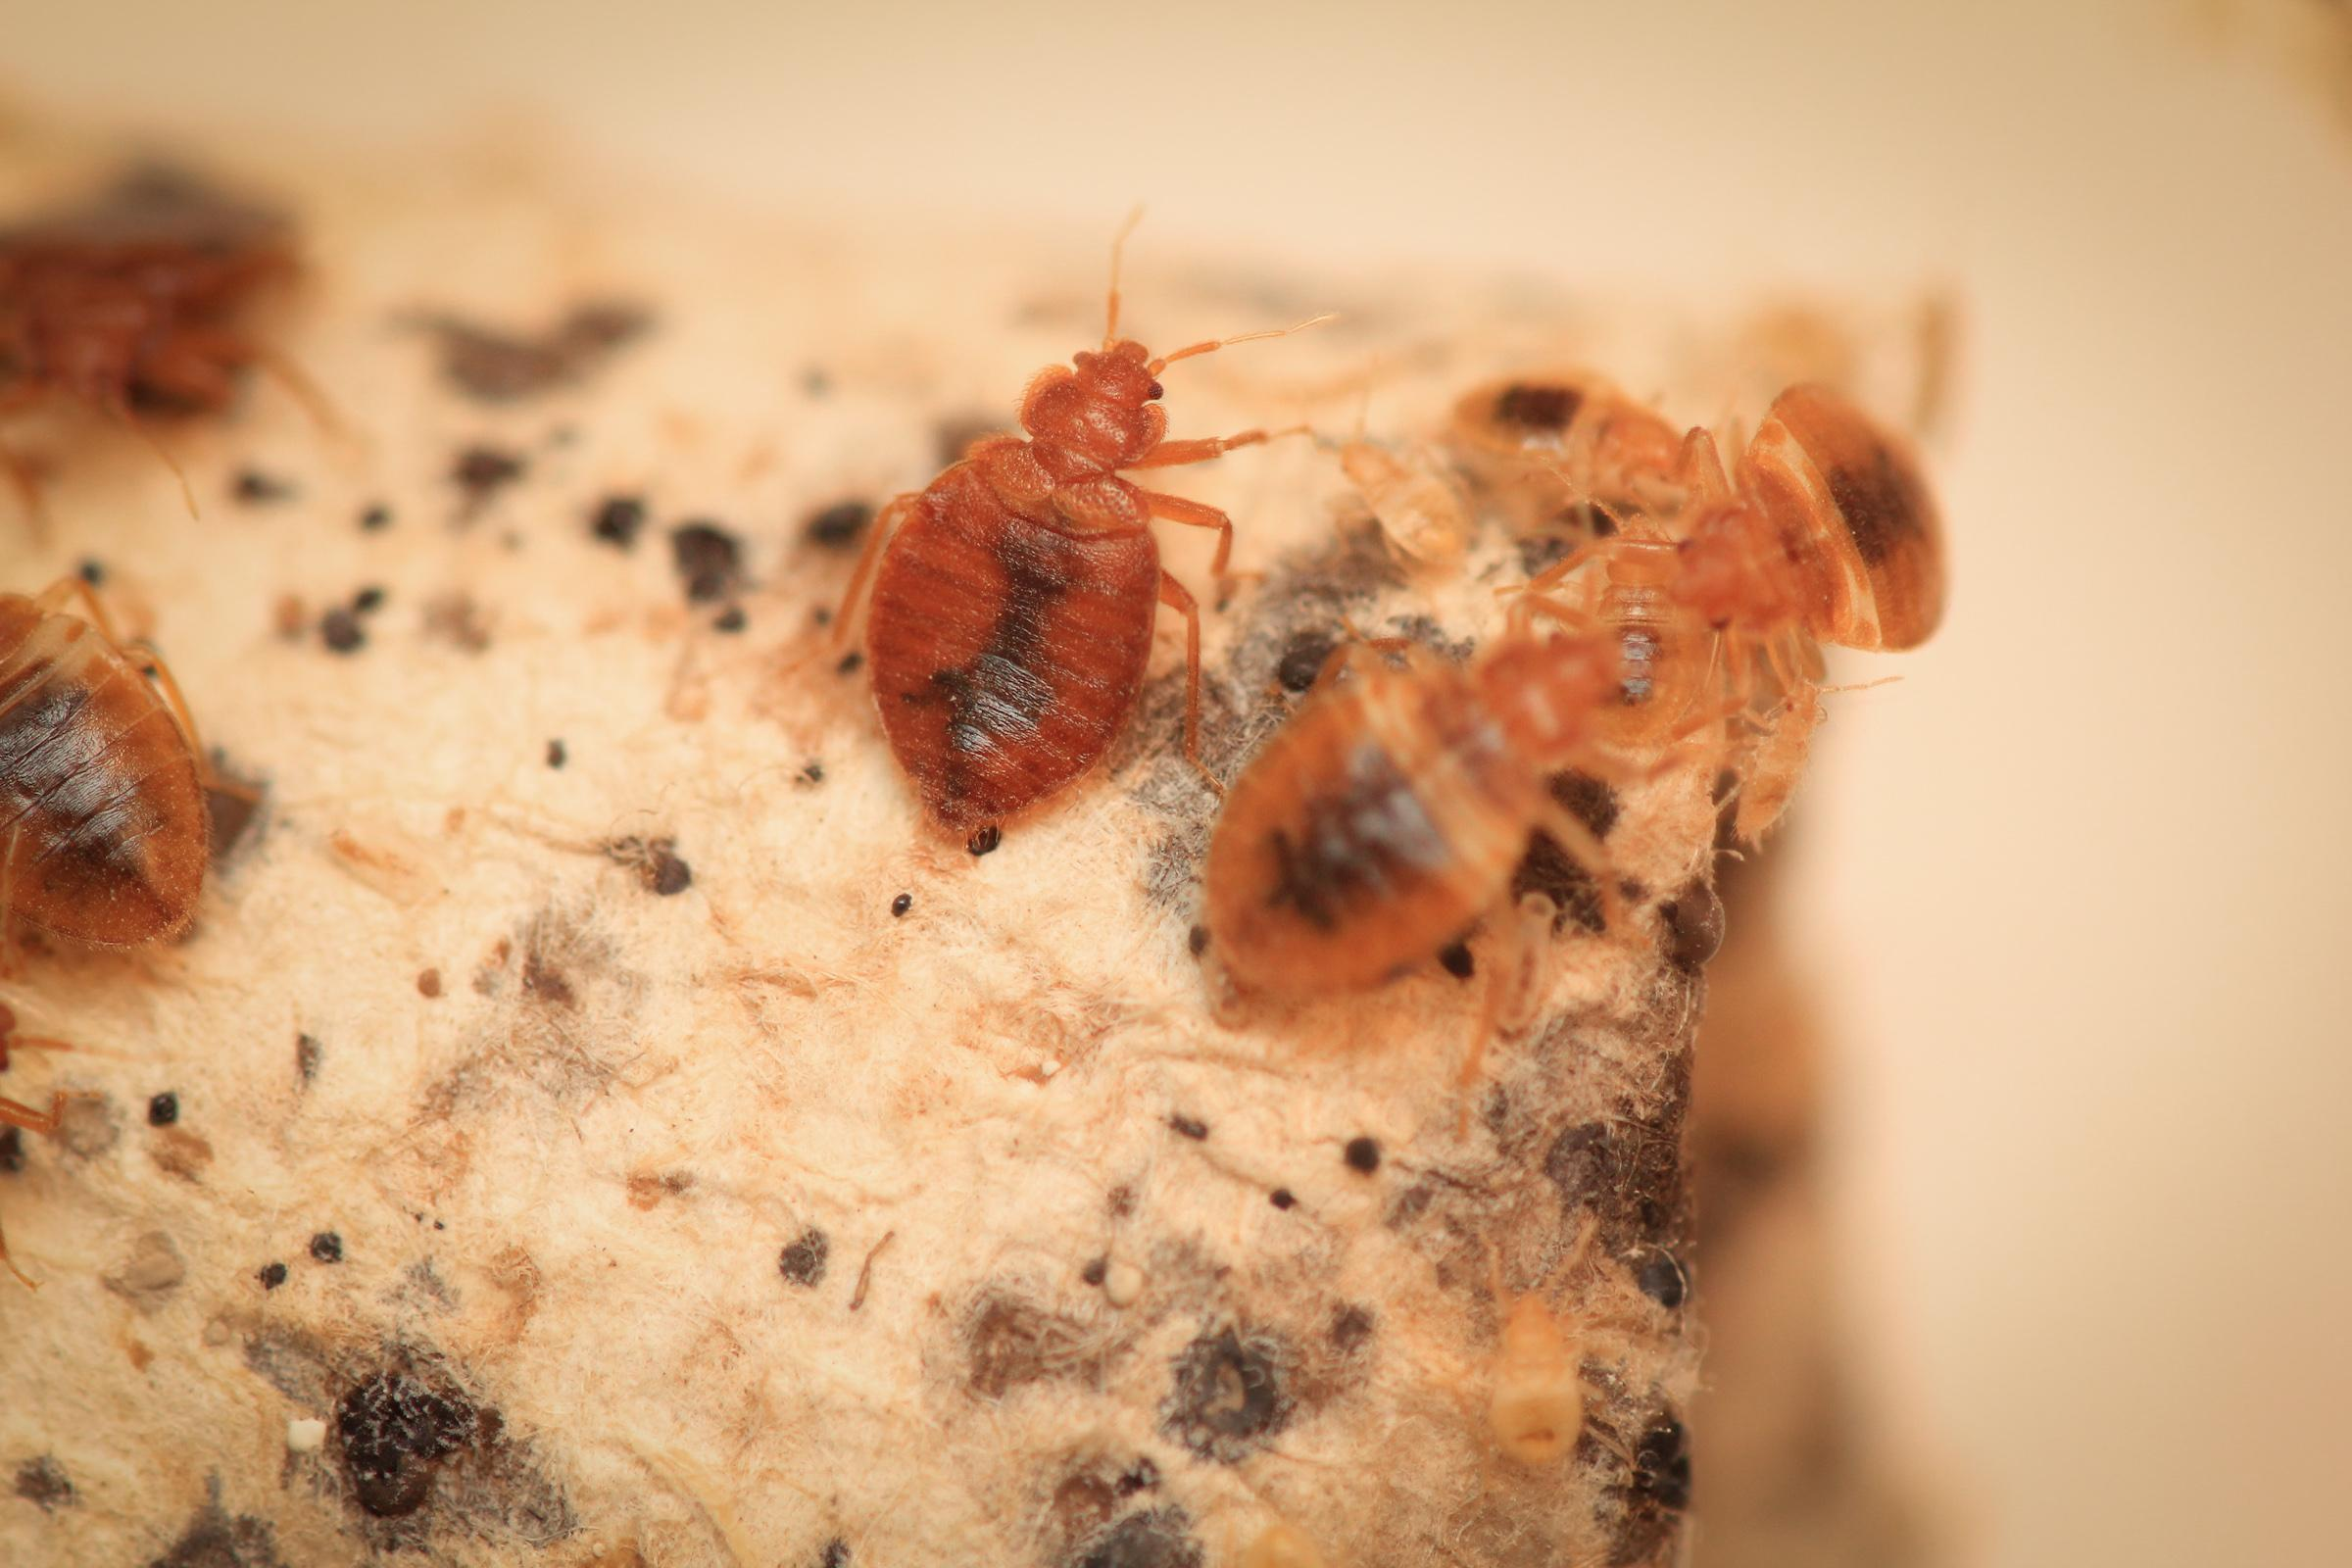 How To Kill Bed Bugs With Natural Products